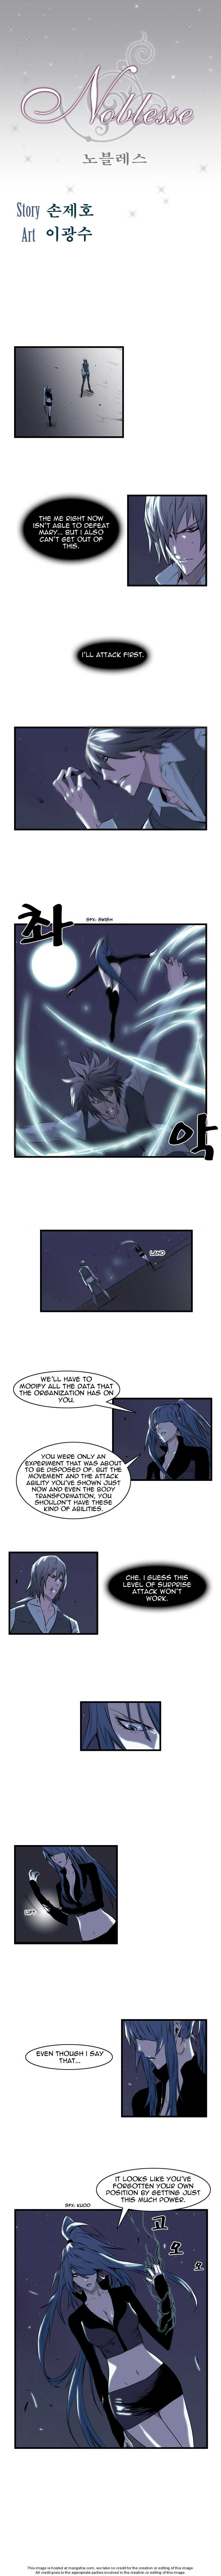 Noblesse 72 Page 1